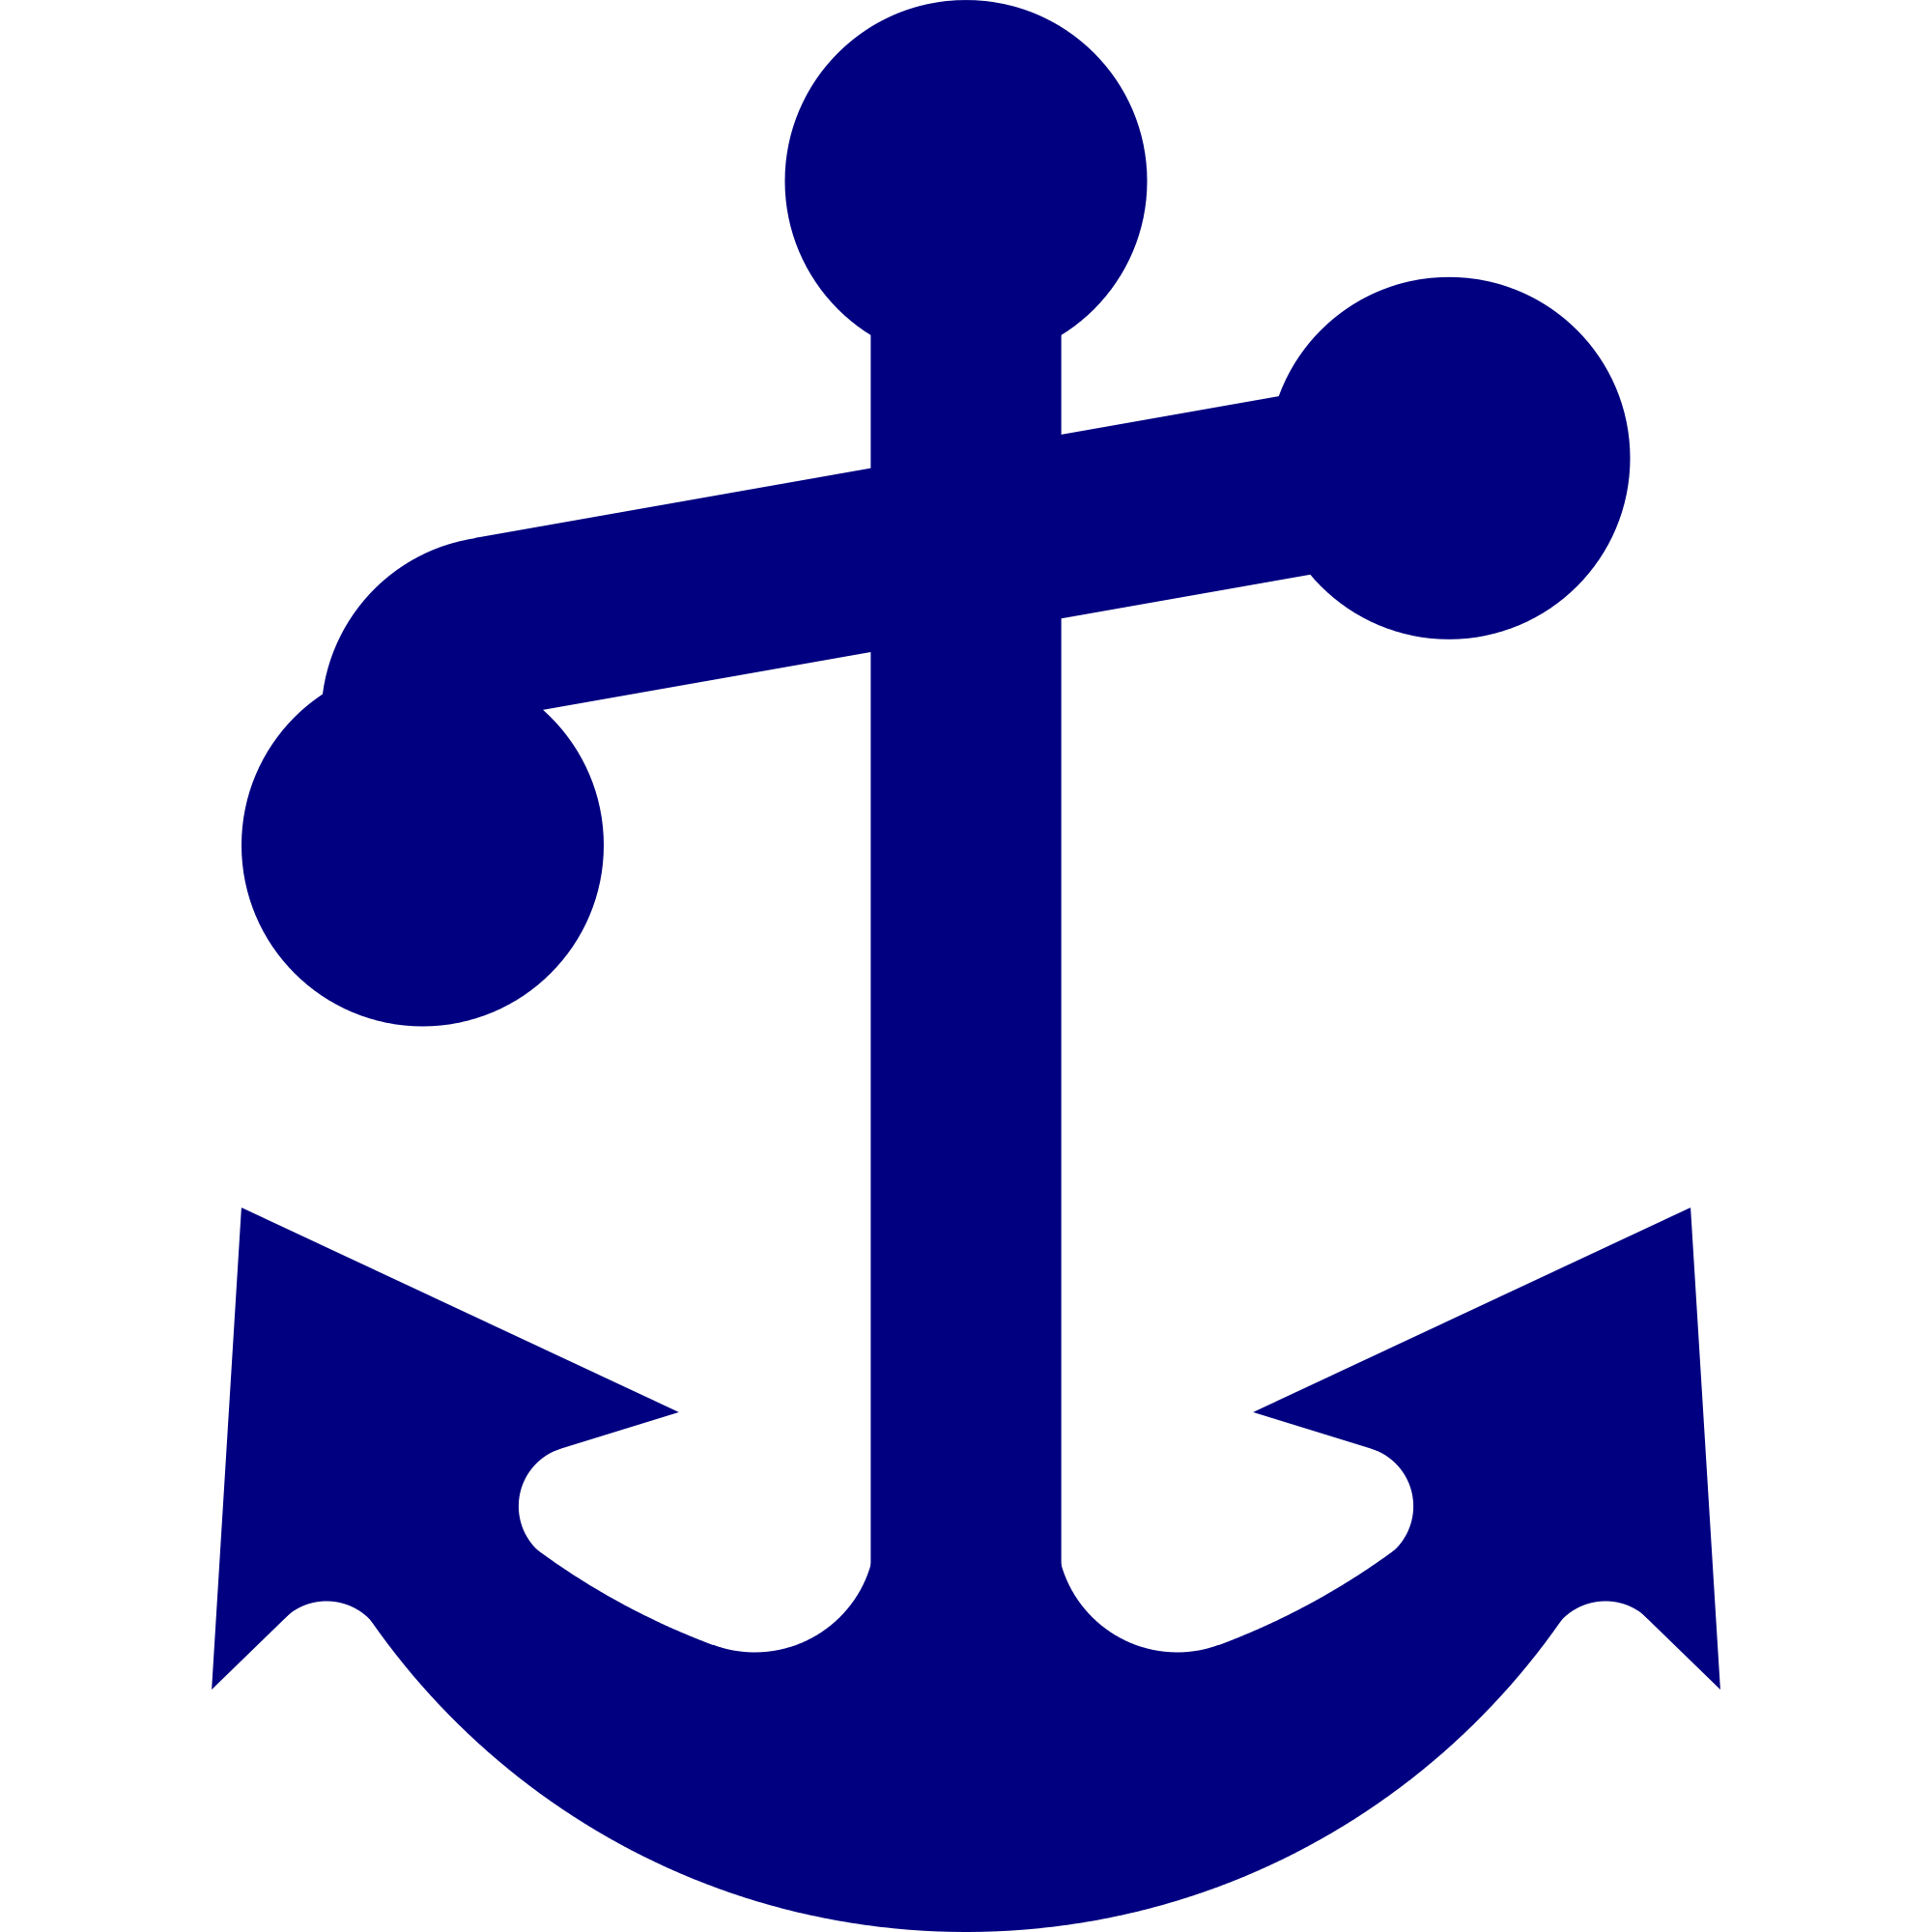 Clipart anchor transparent background. Png